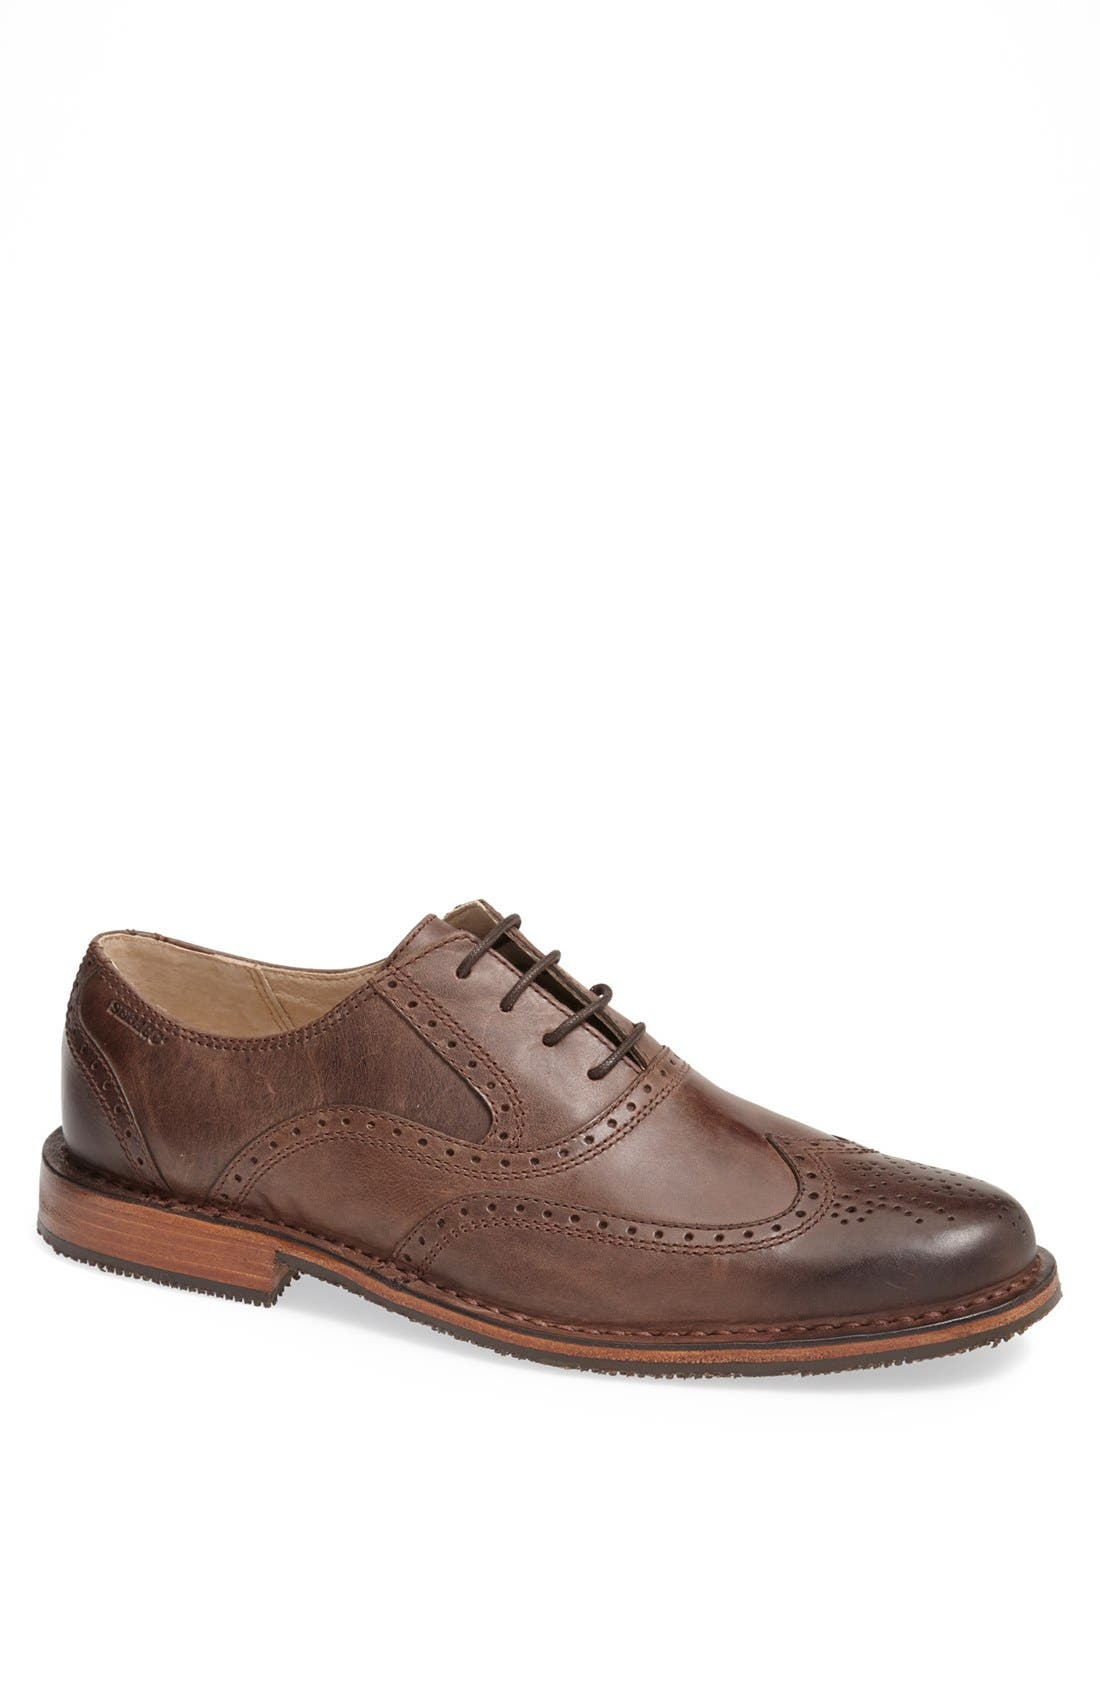 Main Image - Sebago 'Brattle' Wingtip Oxford (Online Only)